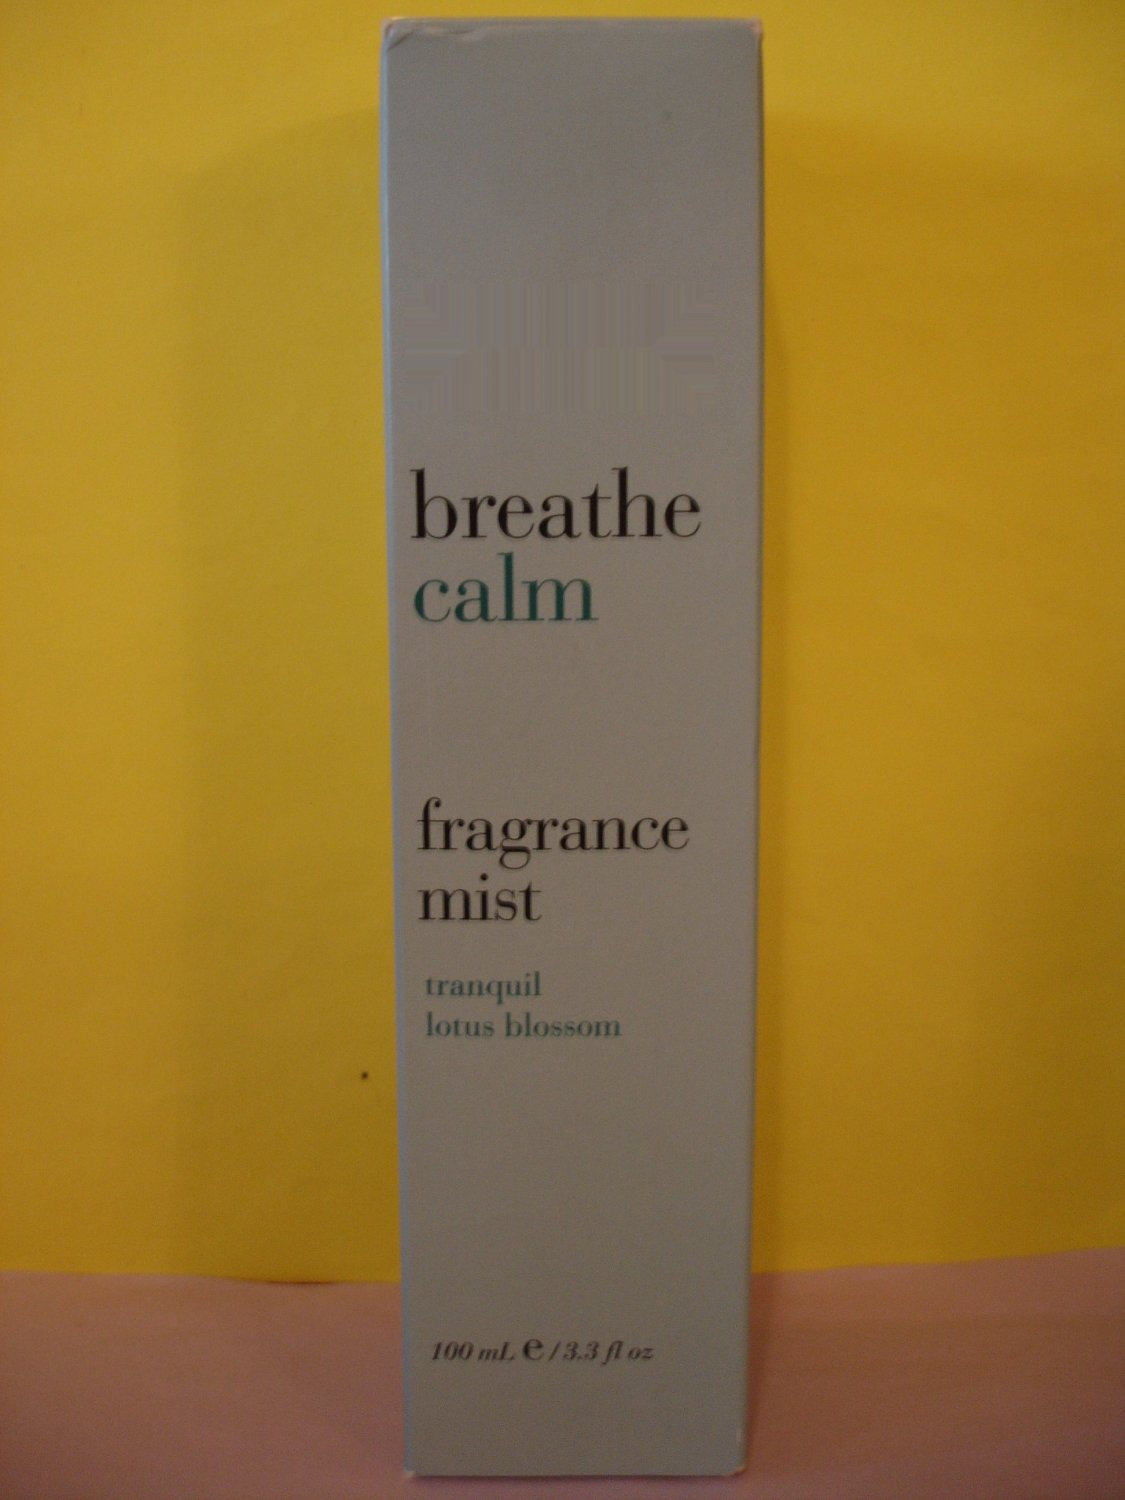 Bath and Body Works Breathe Calm Lotus Blossom Mist Perfume Large Full Size